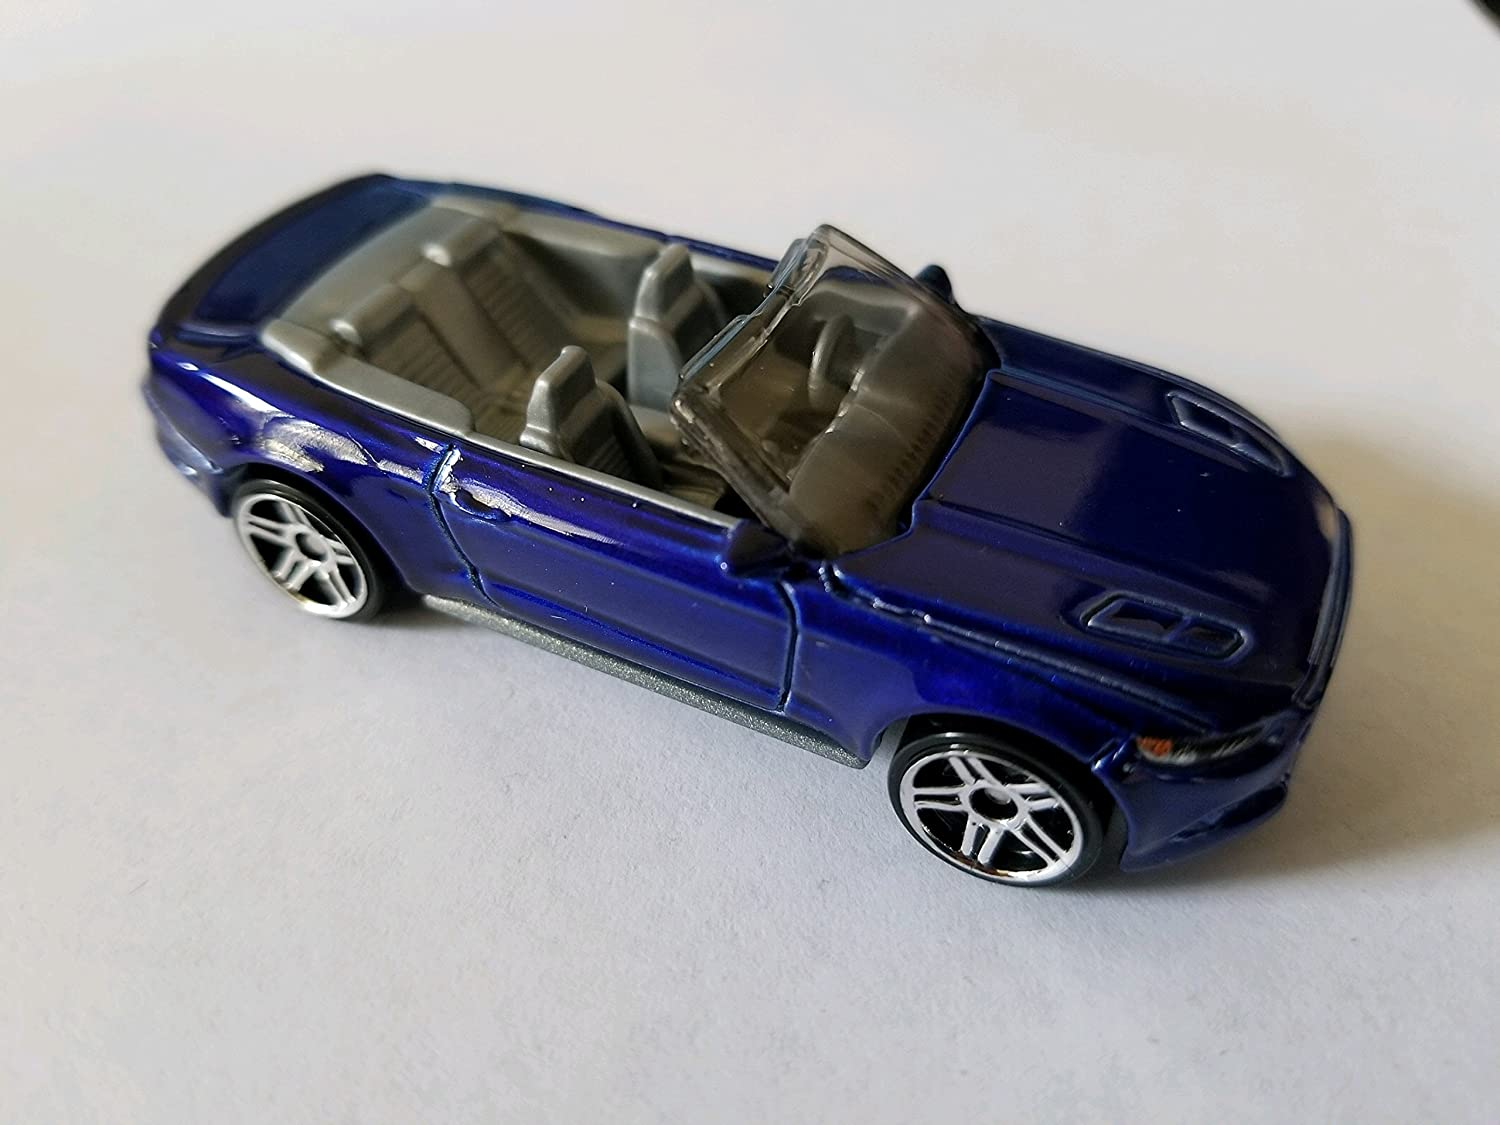 2015 Mustang Wheels >> Hot Wheels 2017 Factory Fresh 2015 Ford Mustang Gt Convertible 104 365 Blue